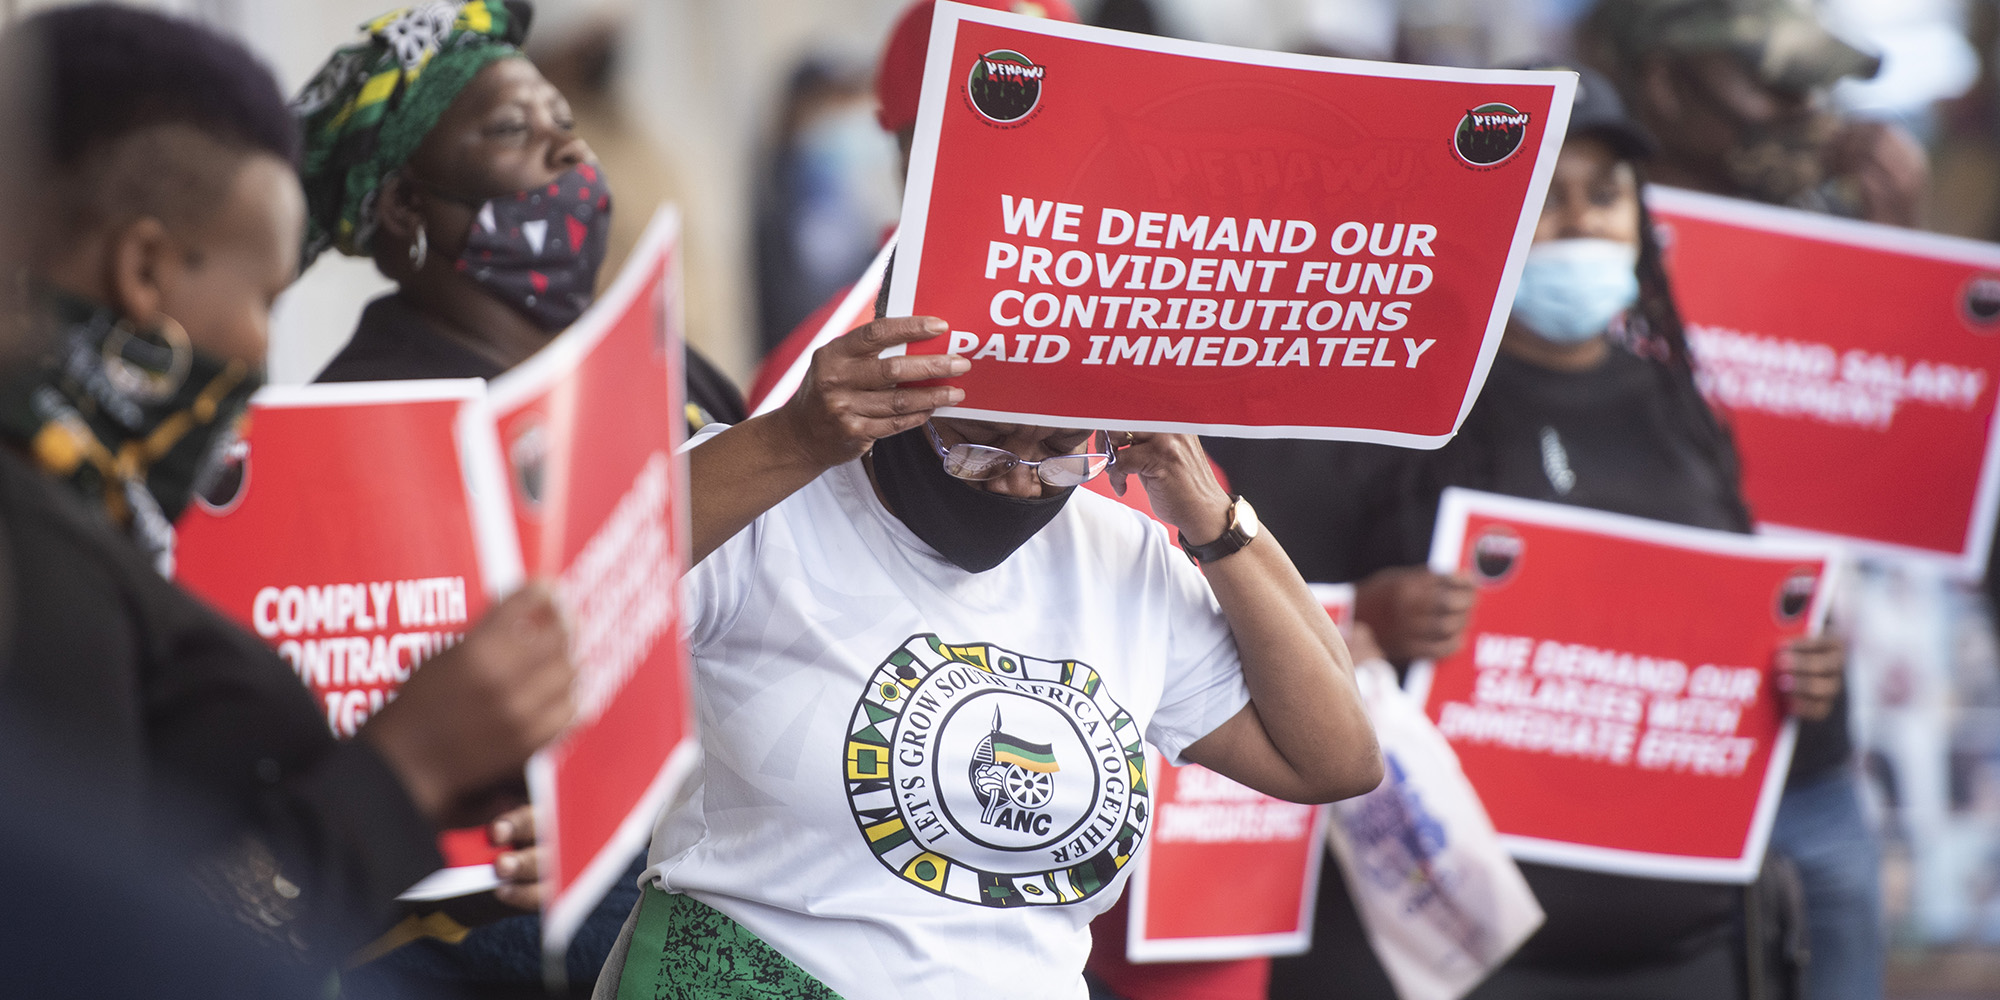 ANALYSIS: ANC staff picket for the first time since unbanning in 1990 as state reforms bite at party finances